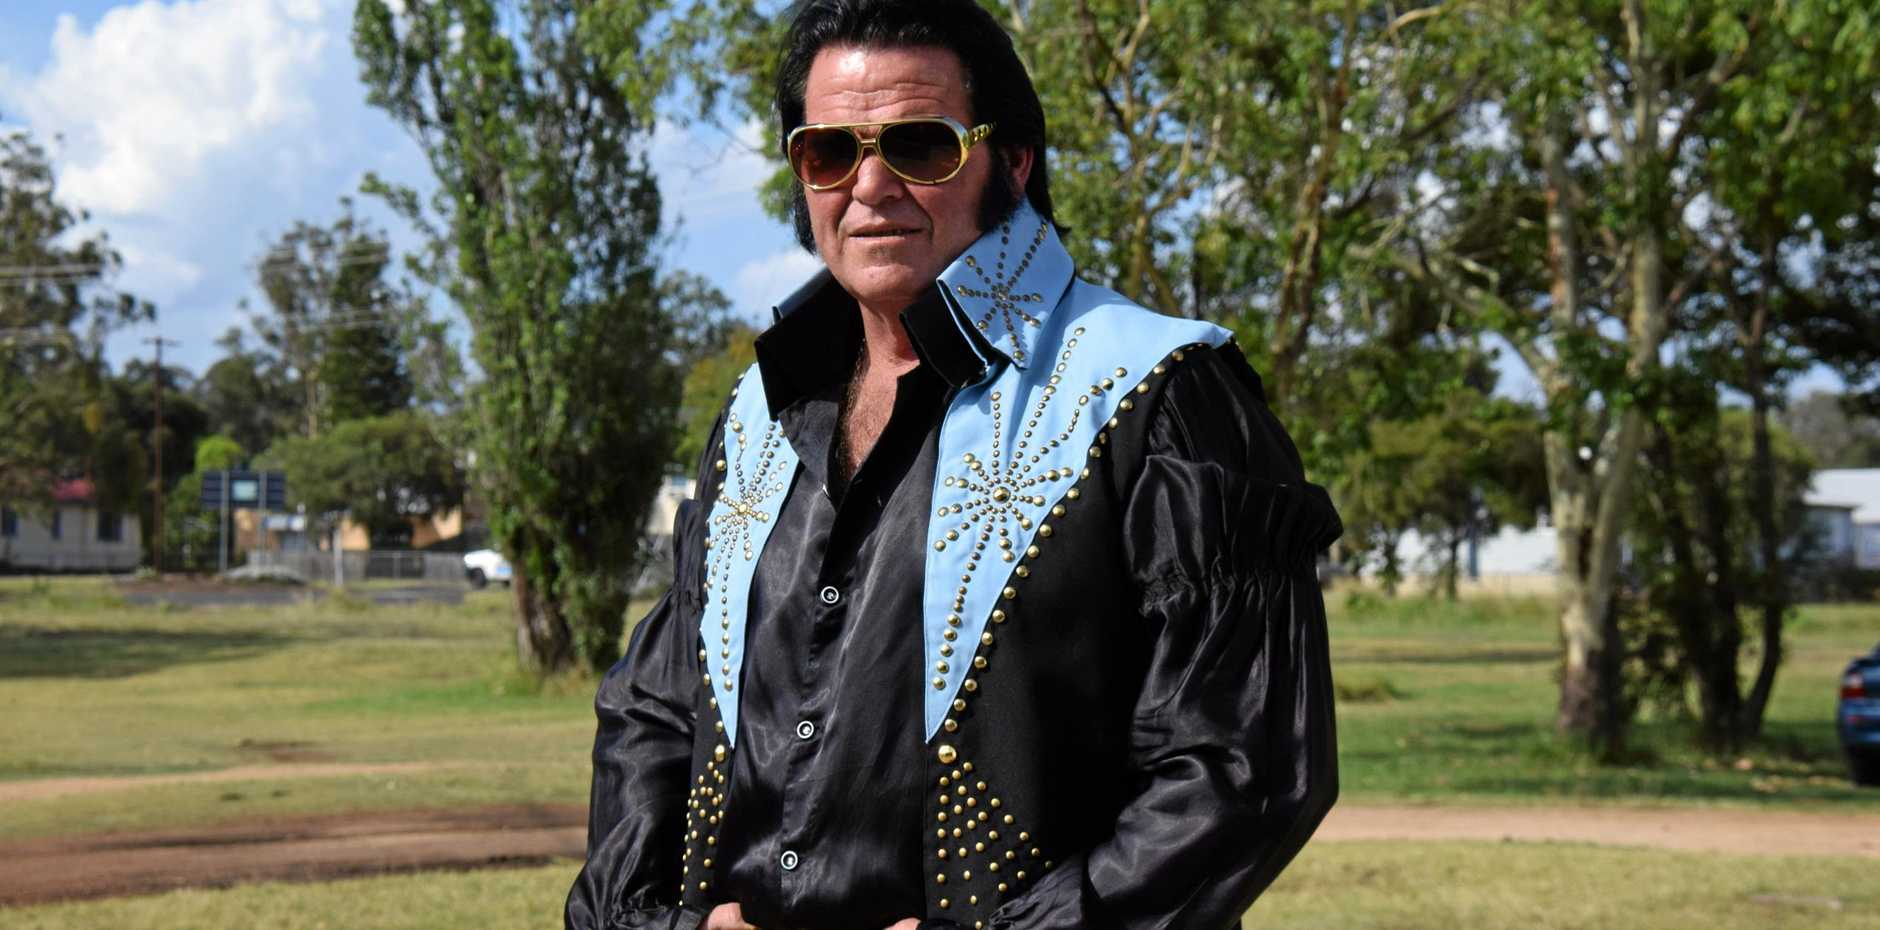 LOVE ME TENDER: Kingaroy resident, Jeff Hancox will be attending next year's Parkes Elvis tribute competition.